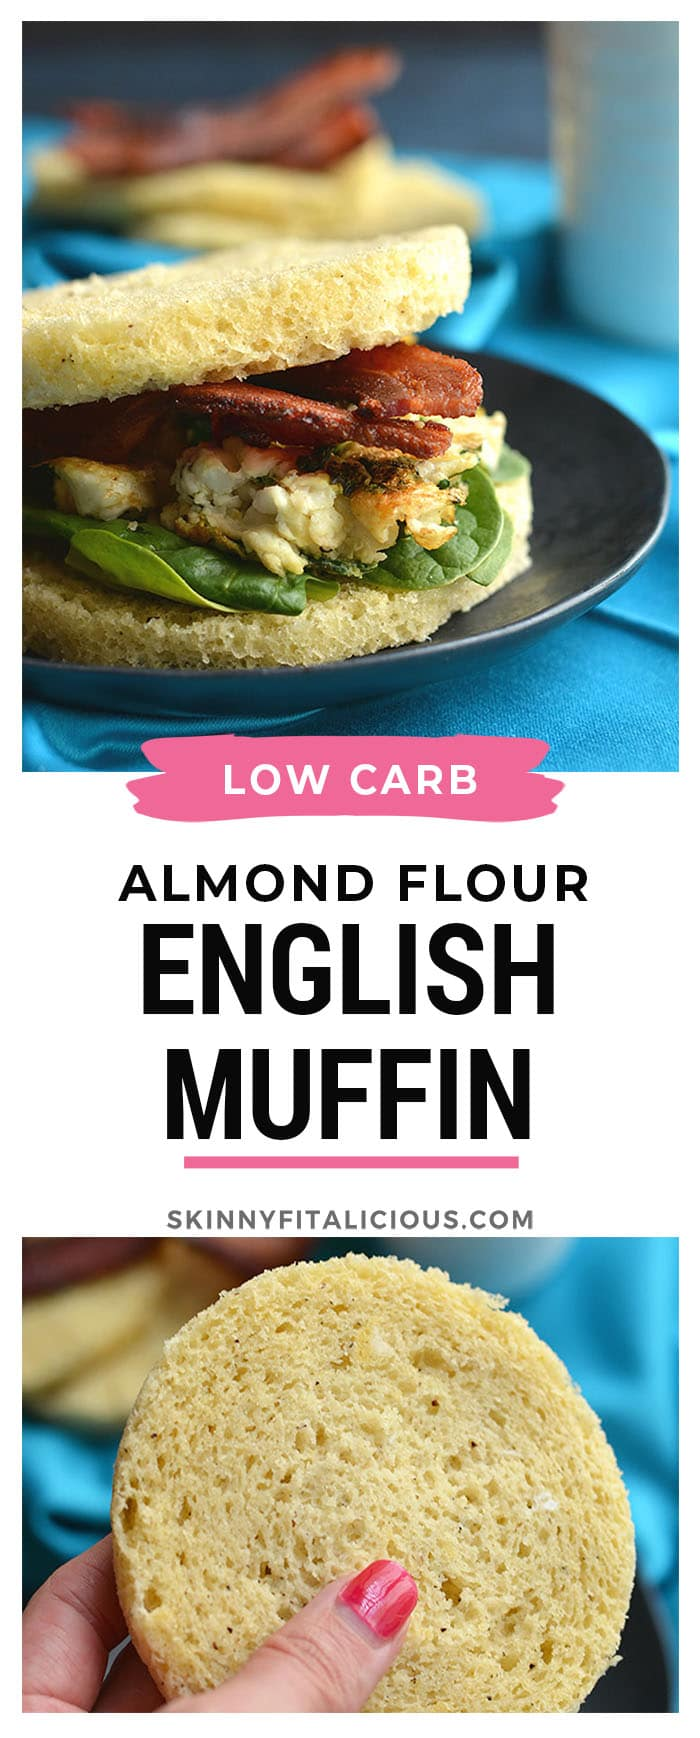 Low Carb Breakfast Sandwich made in under 2 minutes in the microwave. Make this English muffin ahead of time & freeze, or in the morning, noon or night for a healthy, Paleo, fluffy like a cloud bread. Paleo + Gluten Free + Keto